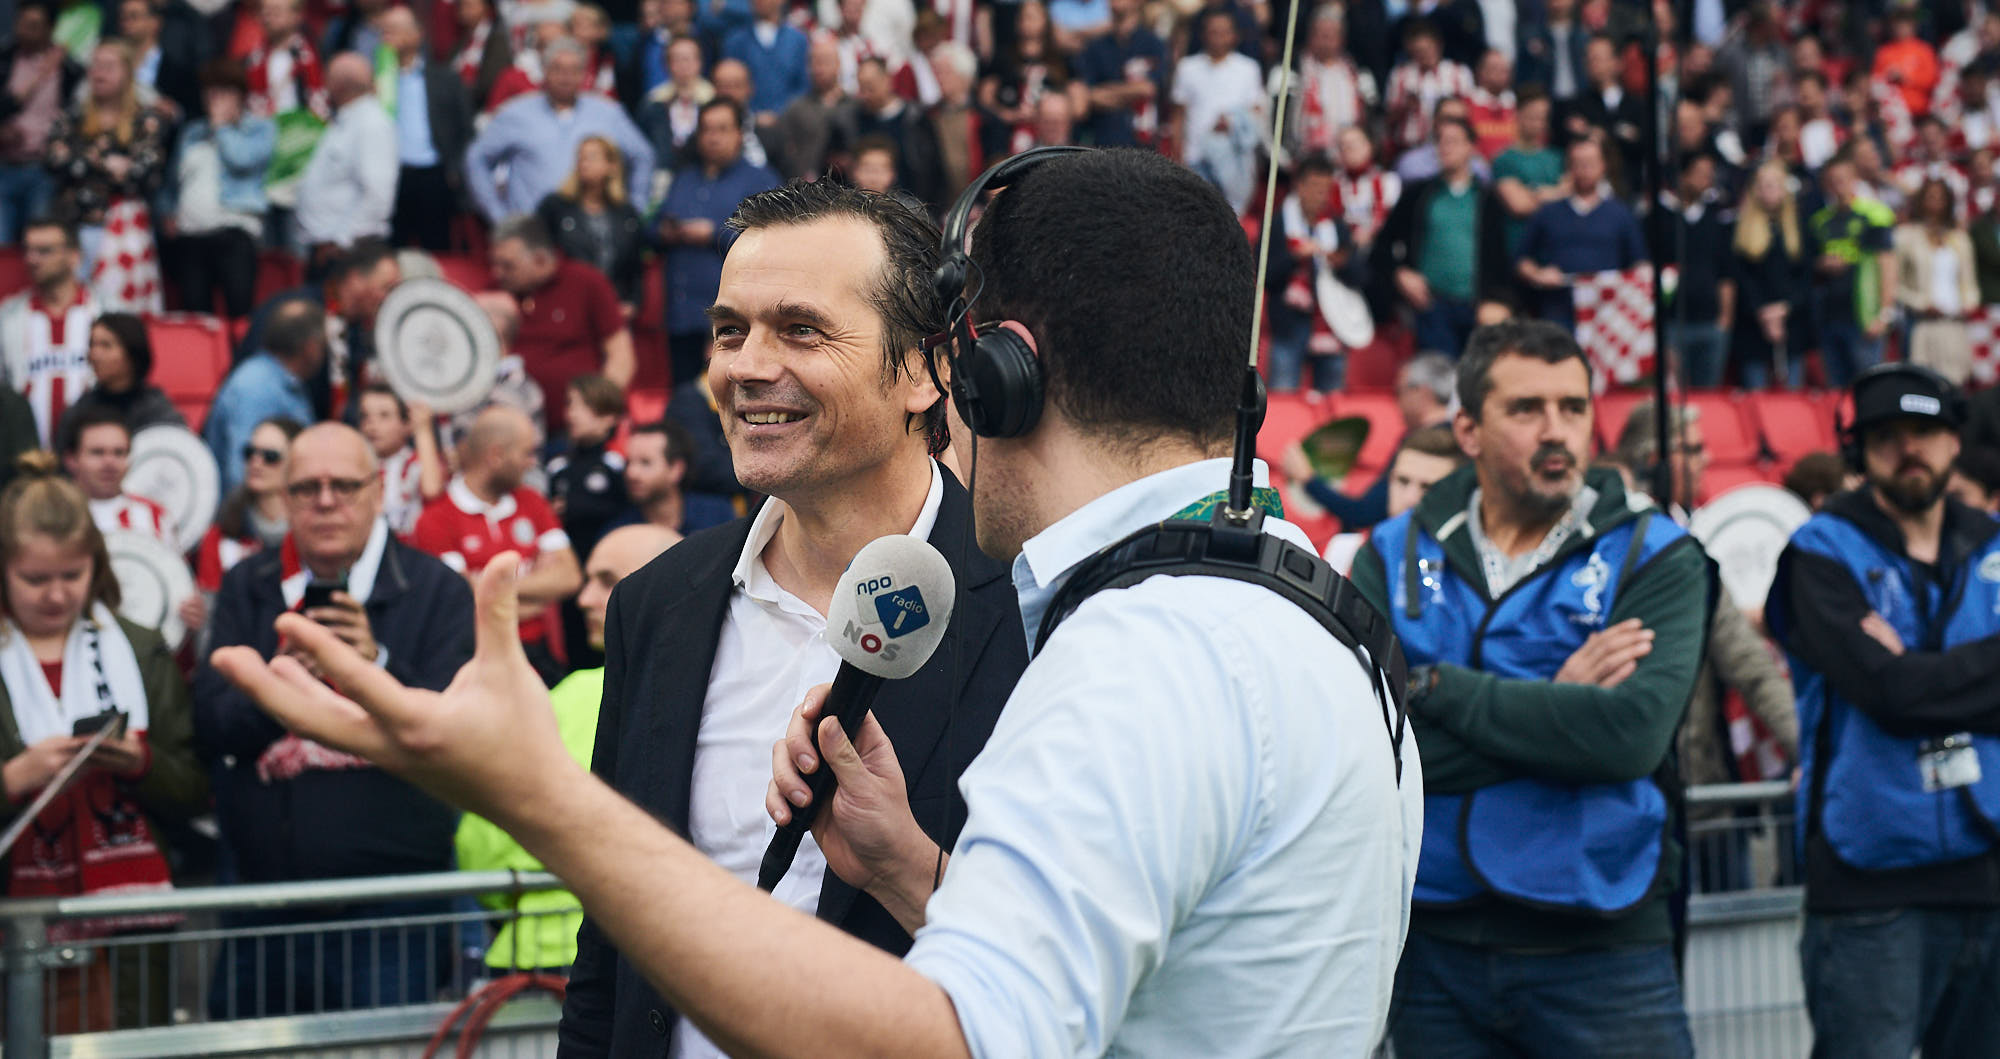 PSV coach Philip Cocu in an interview after becoming champion